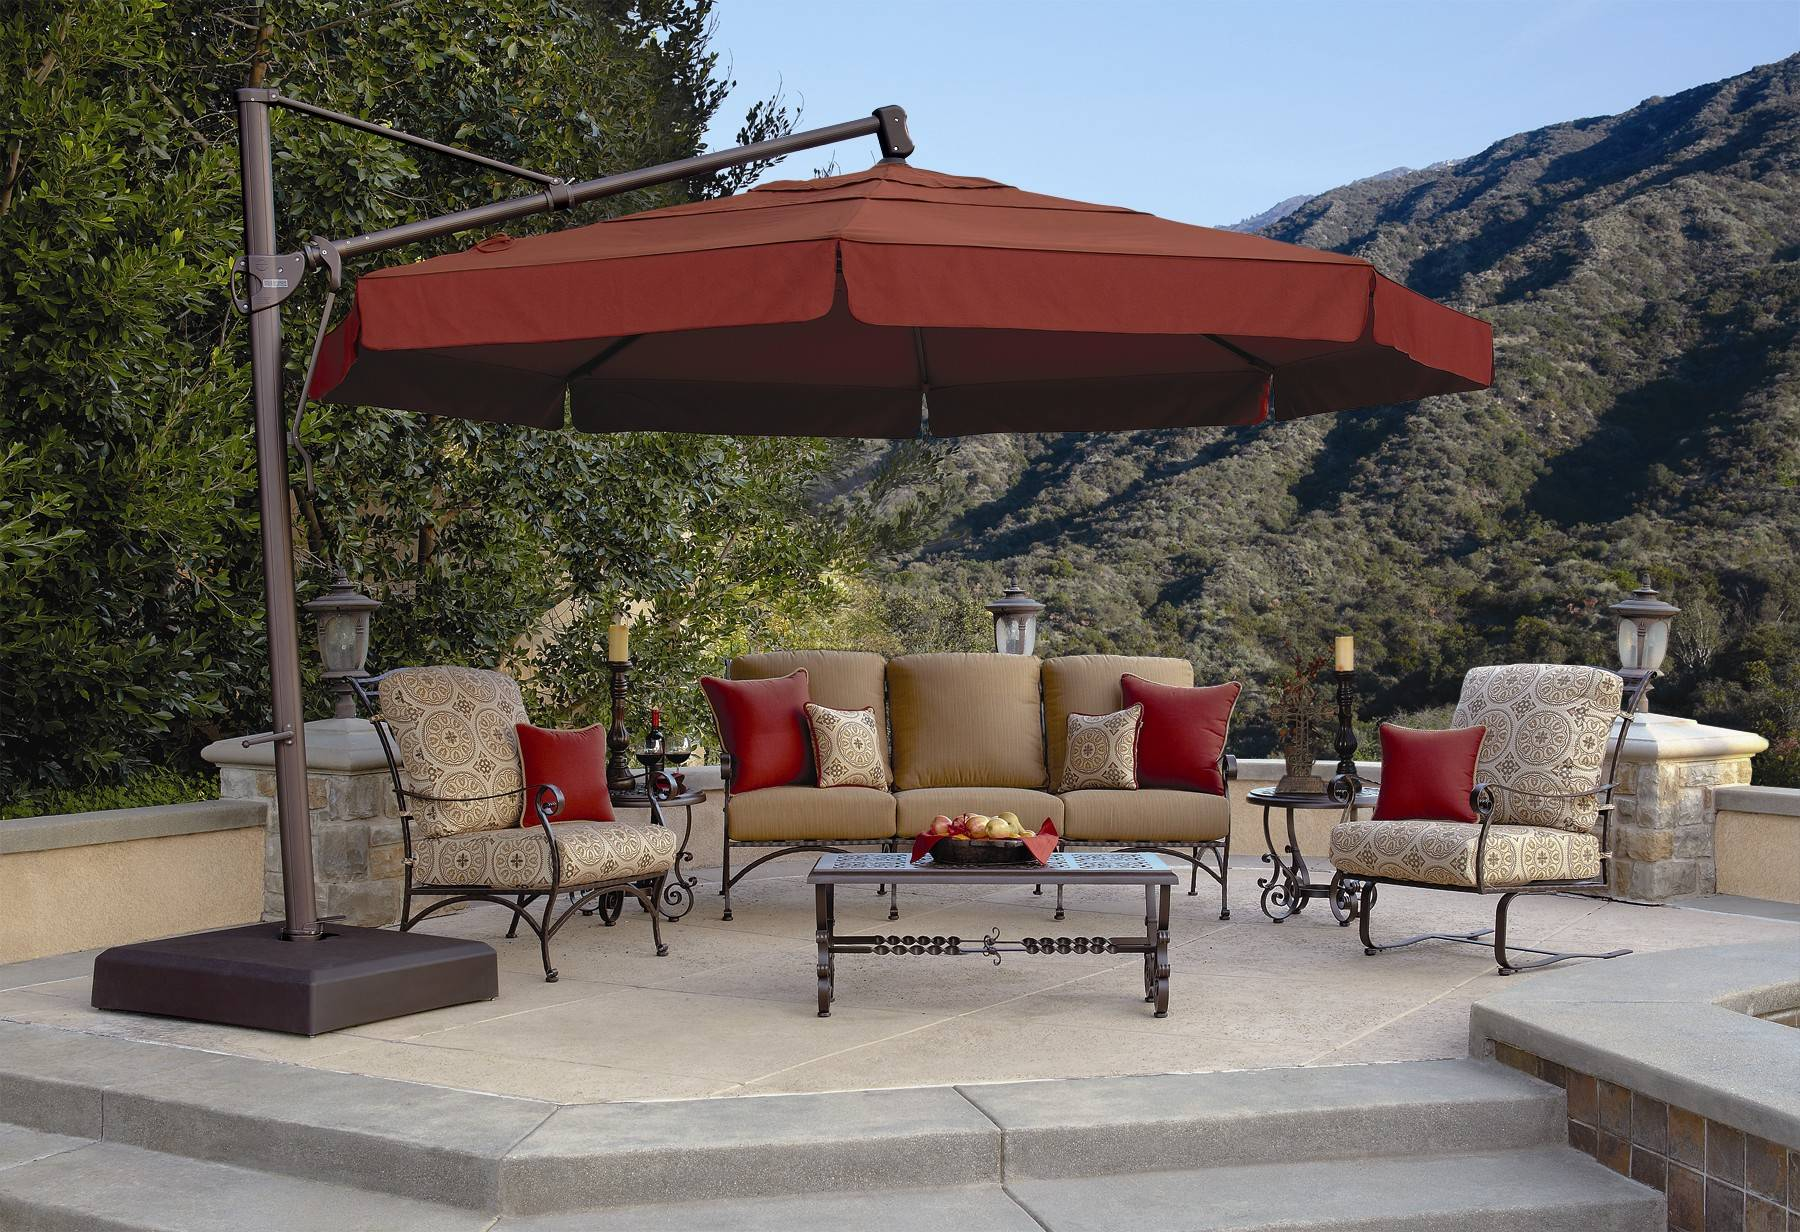 Viking Ski and Patio carries a large selection of outdoor furniture.